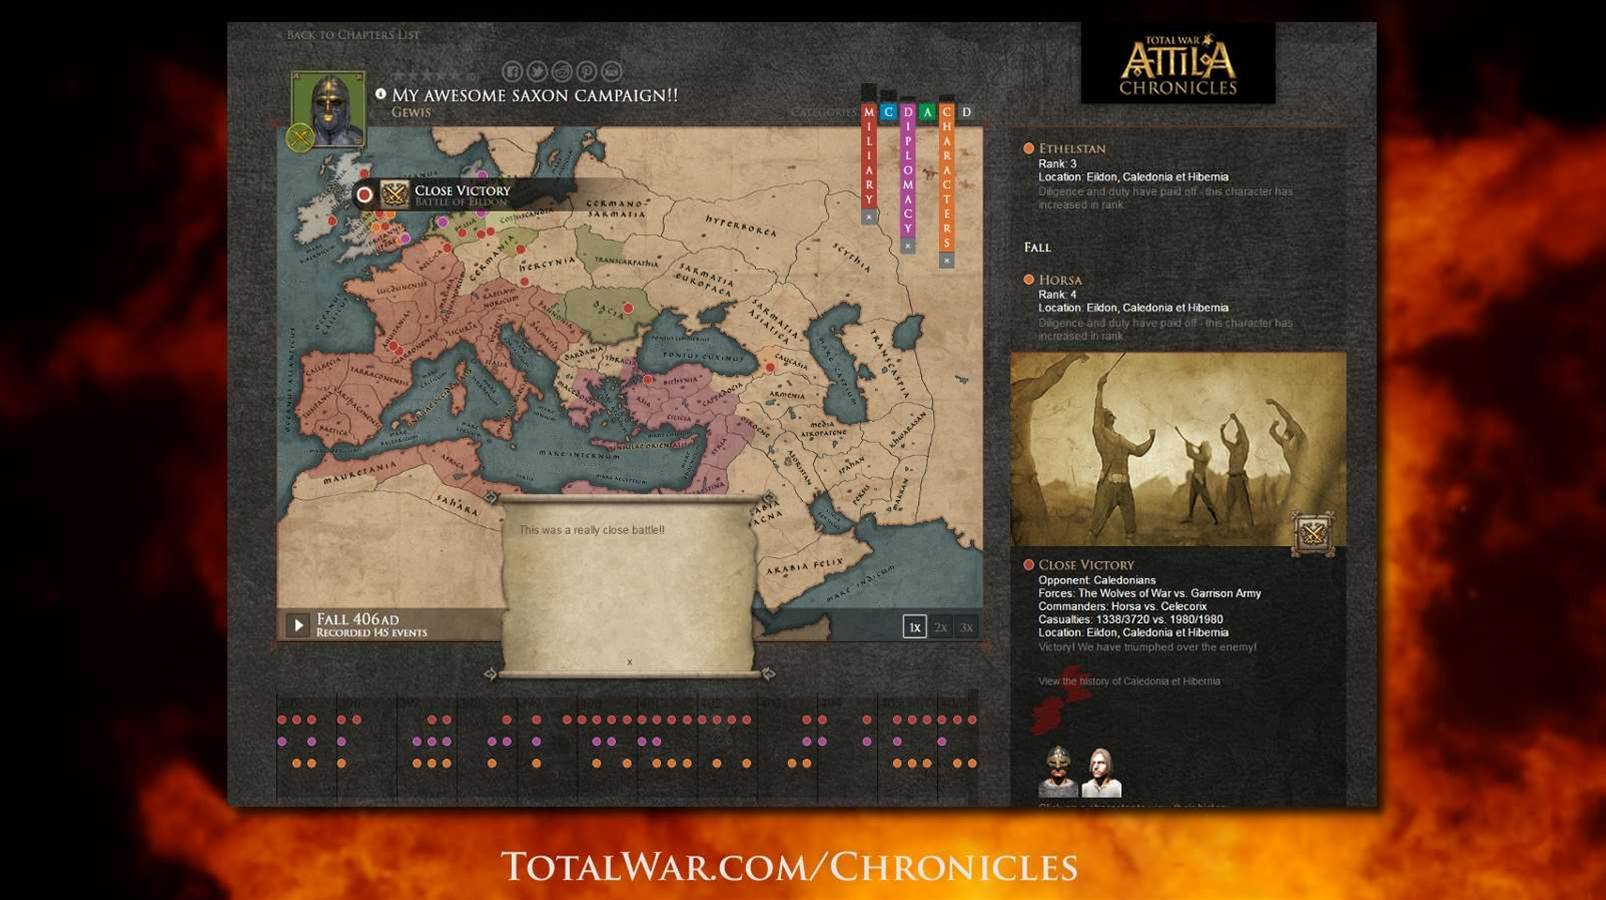 Total War Chronicles lets you upload and share your Attila campaigns